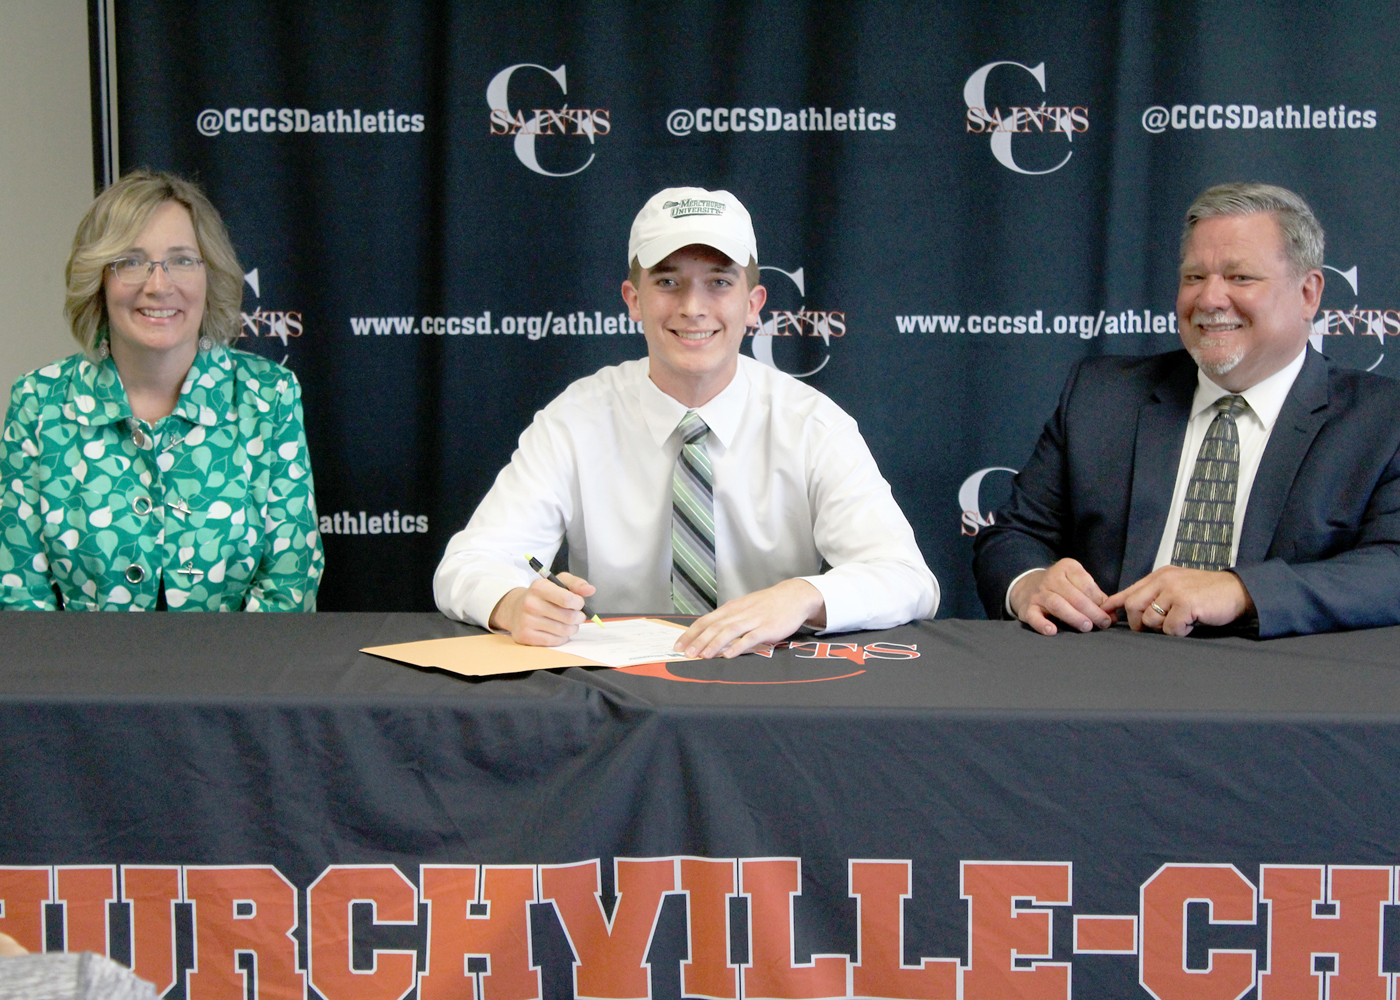 Churchville-Chili senior Ryan TerHaar, with parents Susan and Michael TerHaar, signs his letter of intent to join the Mercyhurst Lakers lacrosse team. Provided photo